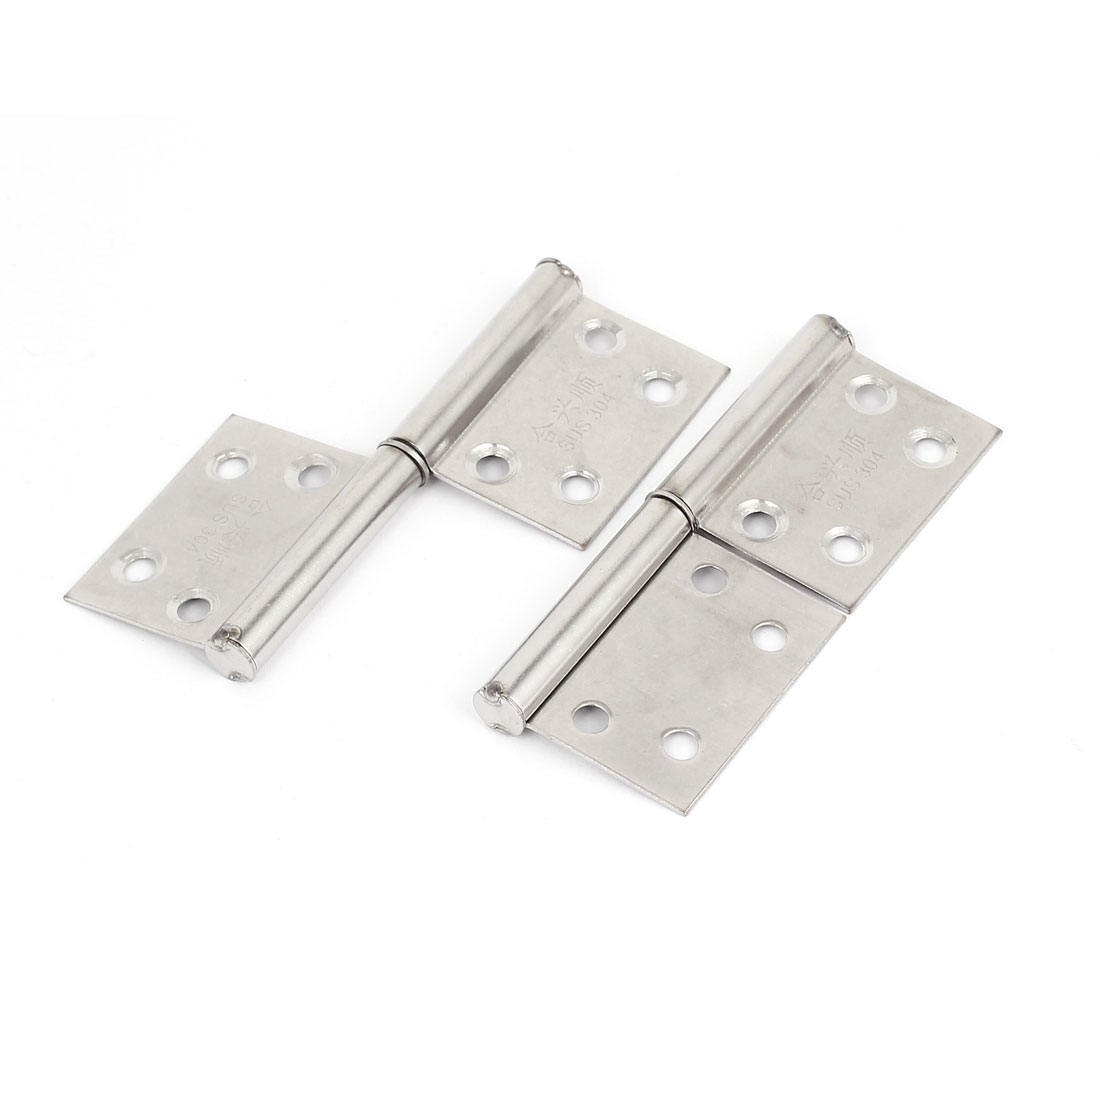 "Cupboard Cabinet Stainless Steel Left Hand Folding Door Butt Hinges 4"" Pairs"